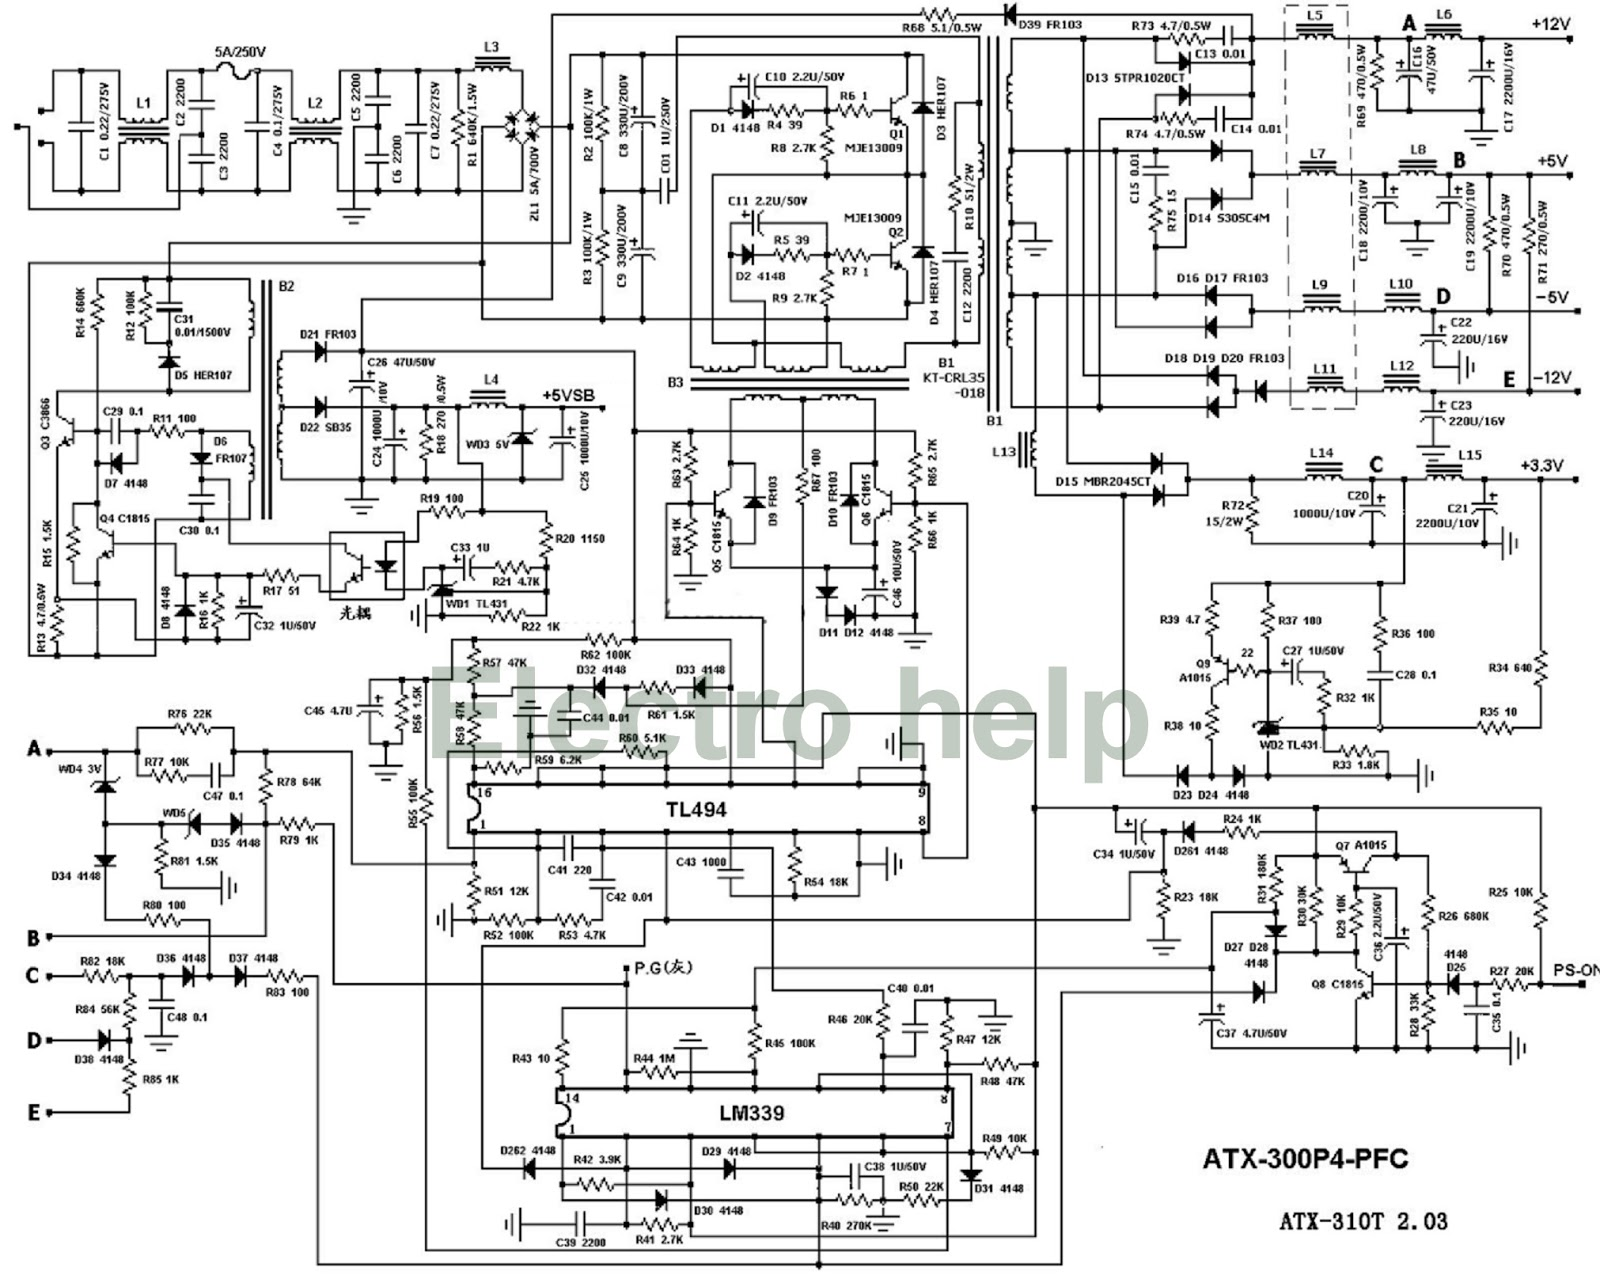 atx power supply wiring diagram jvc kd r320 desktop computers atx300p4